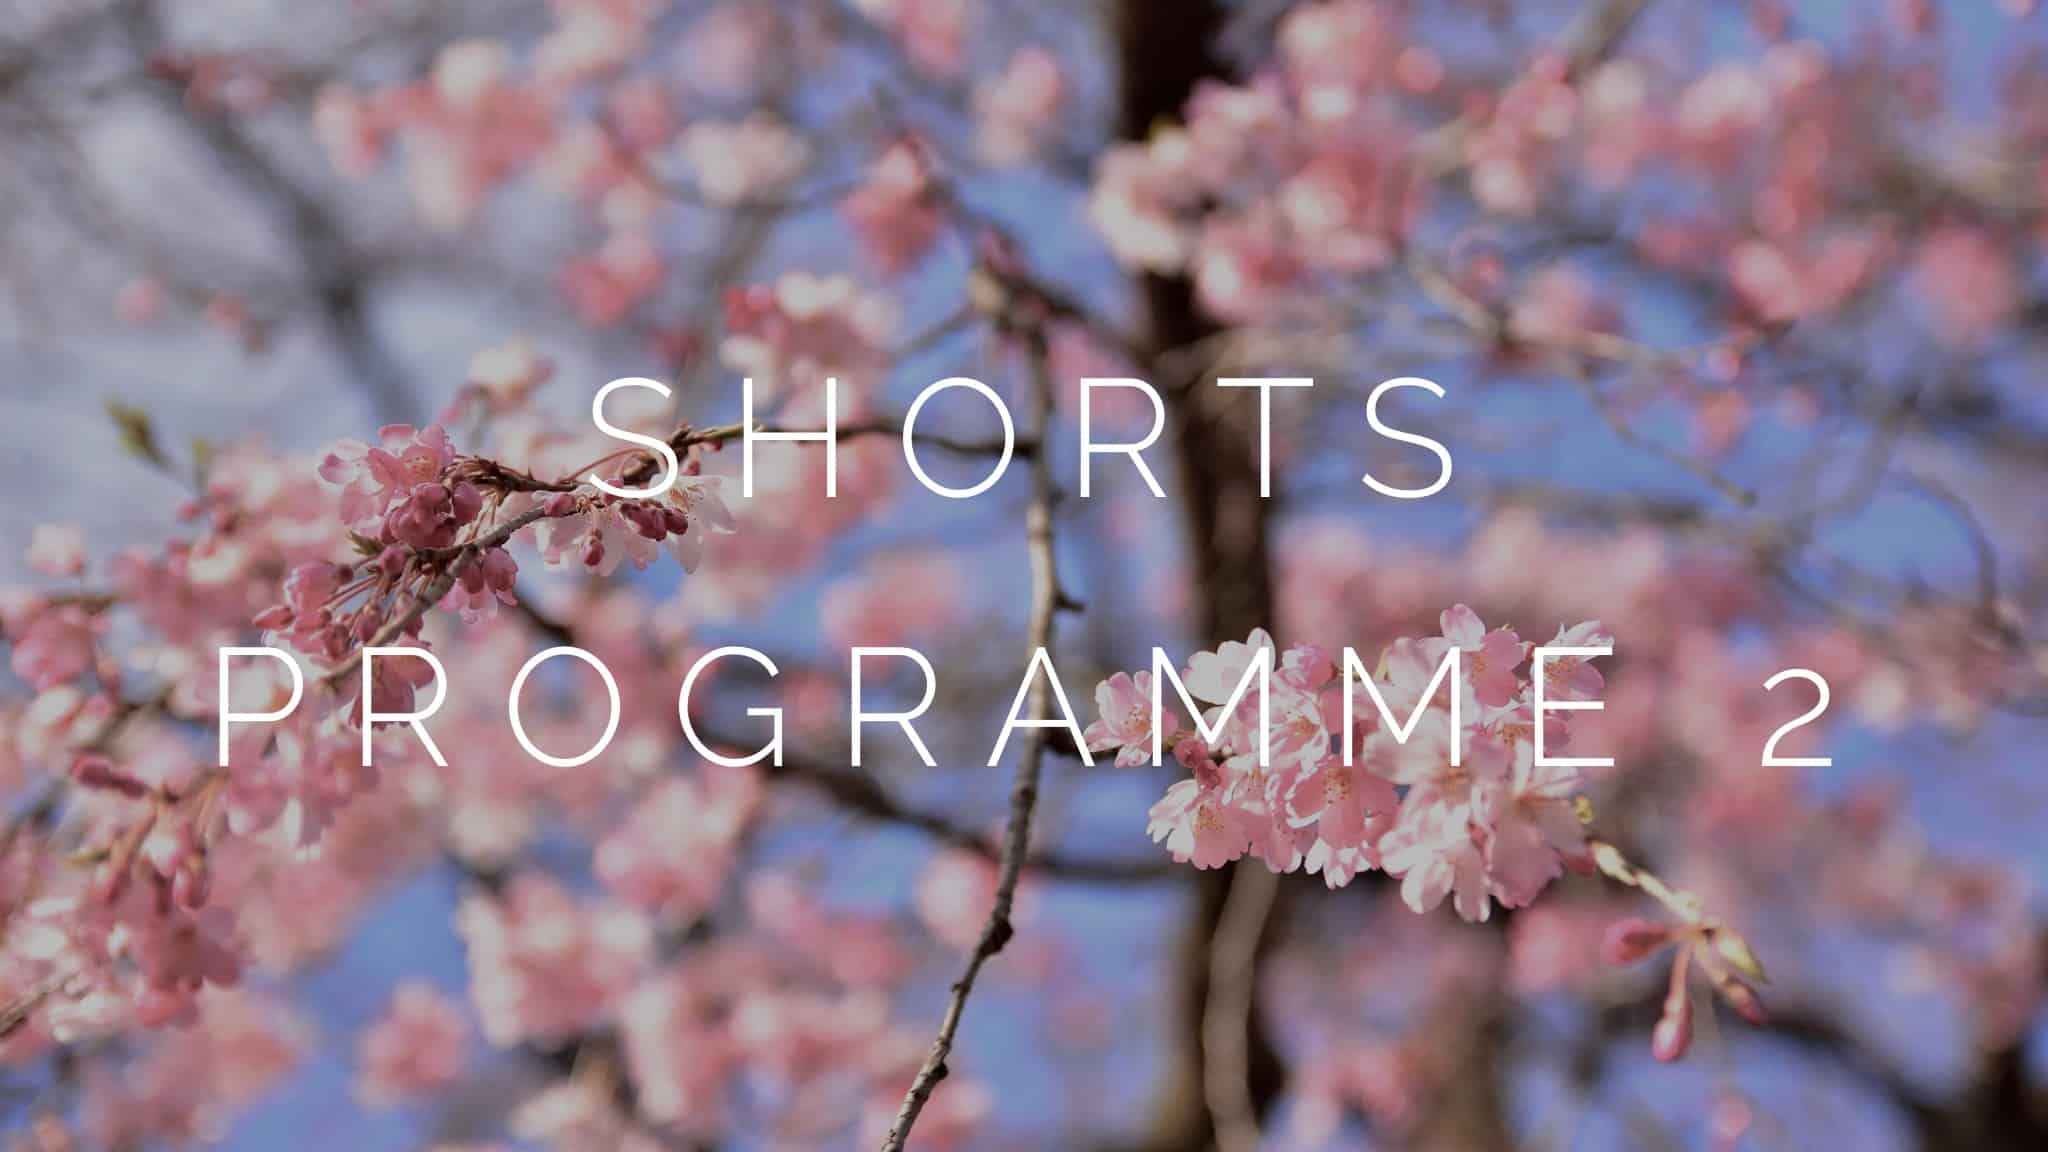 A photograph of cherry blossom to signify the second shorts programme